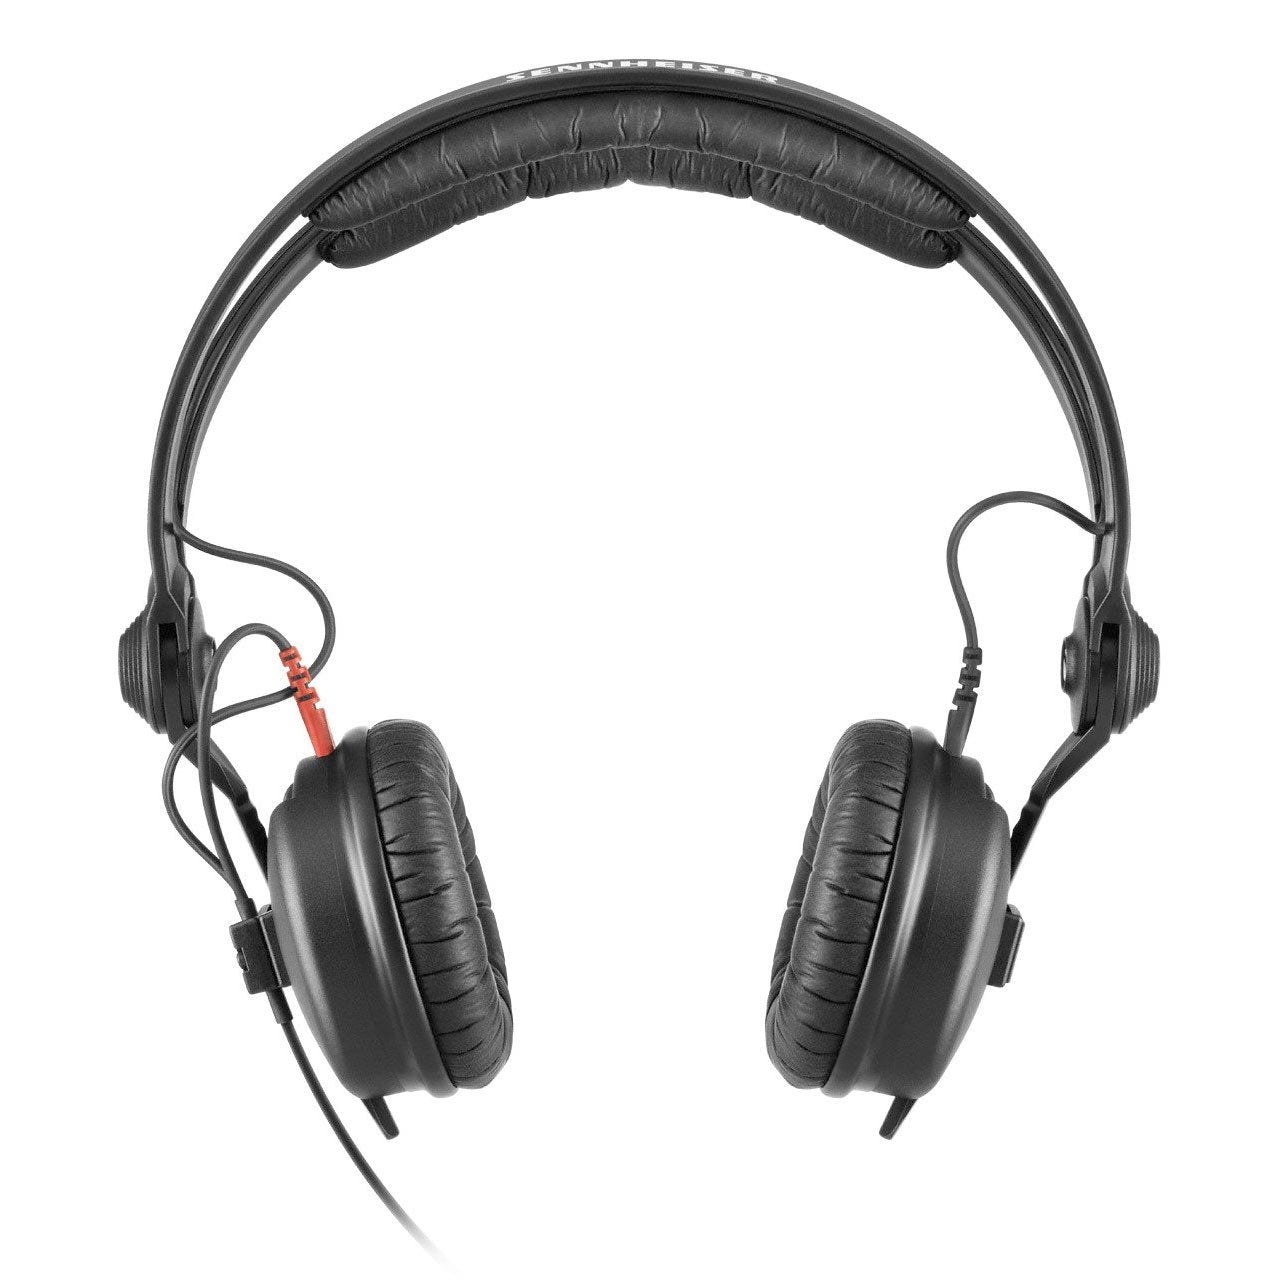 Closed Headphones - Sennheiser HD 25 On Ear DJ Headphone